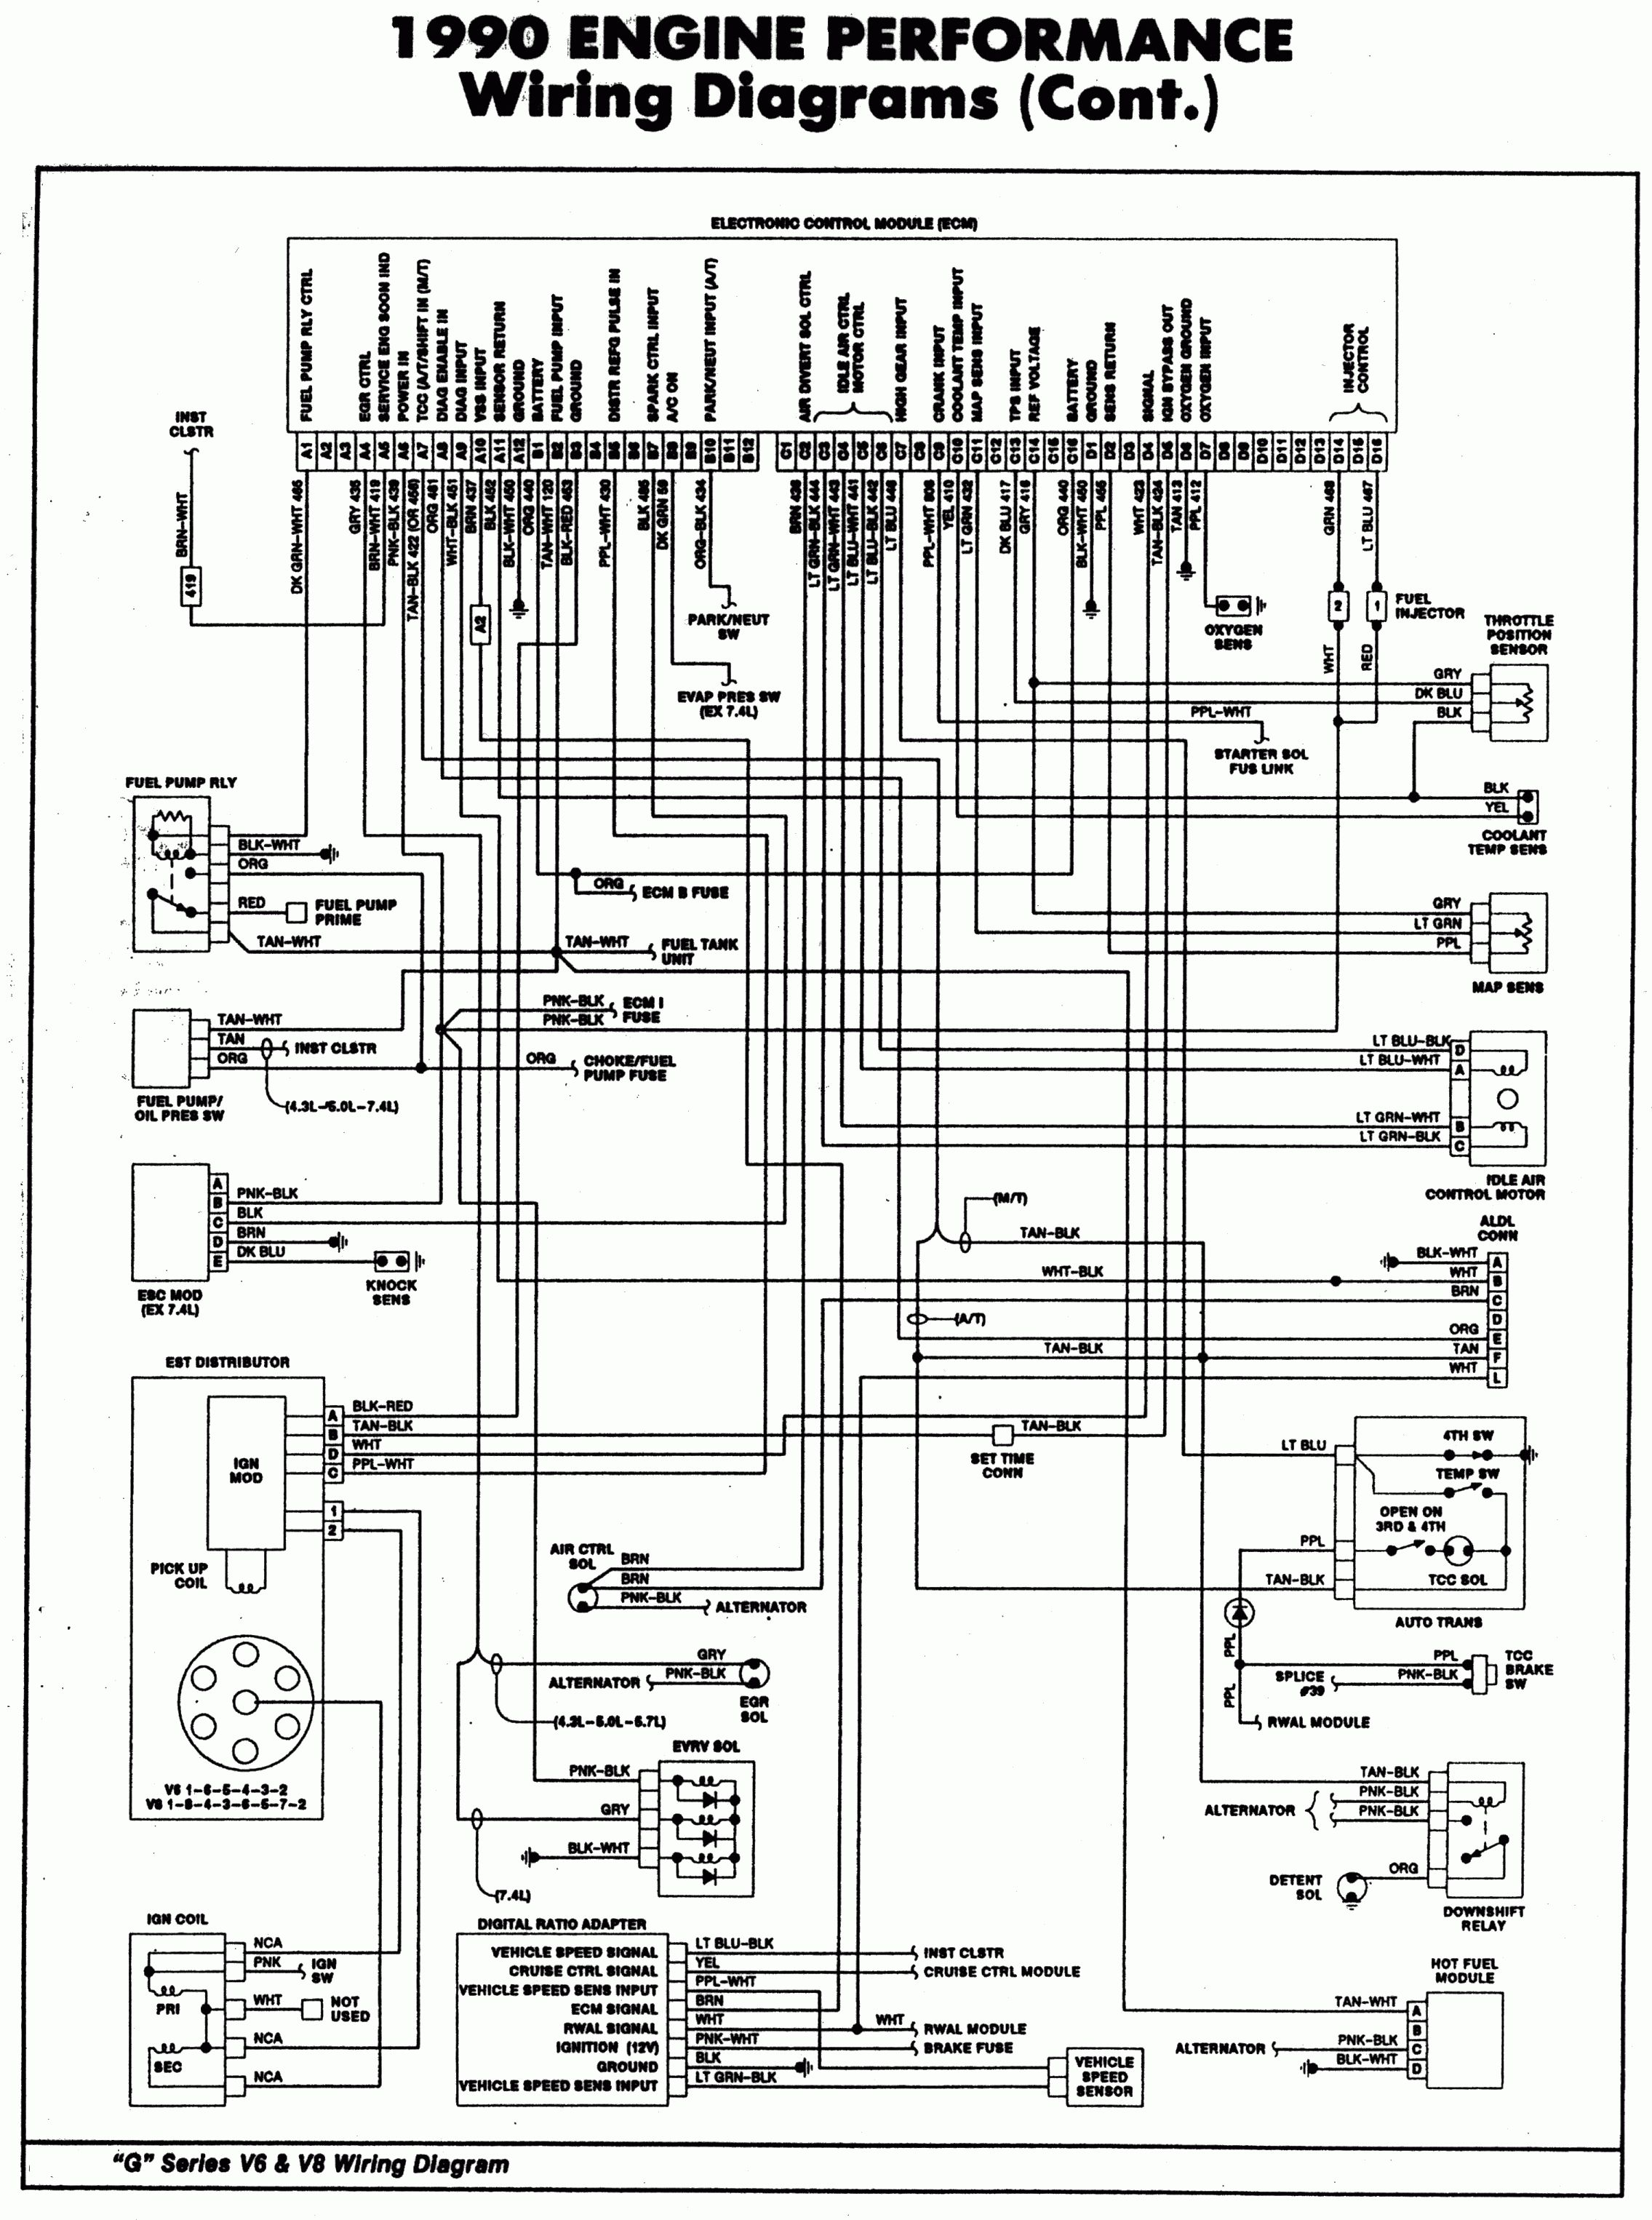 small resolution of 1990 engine performance wiring diagram with control module and pertaining to throttle position sensor wiring diagram